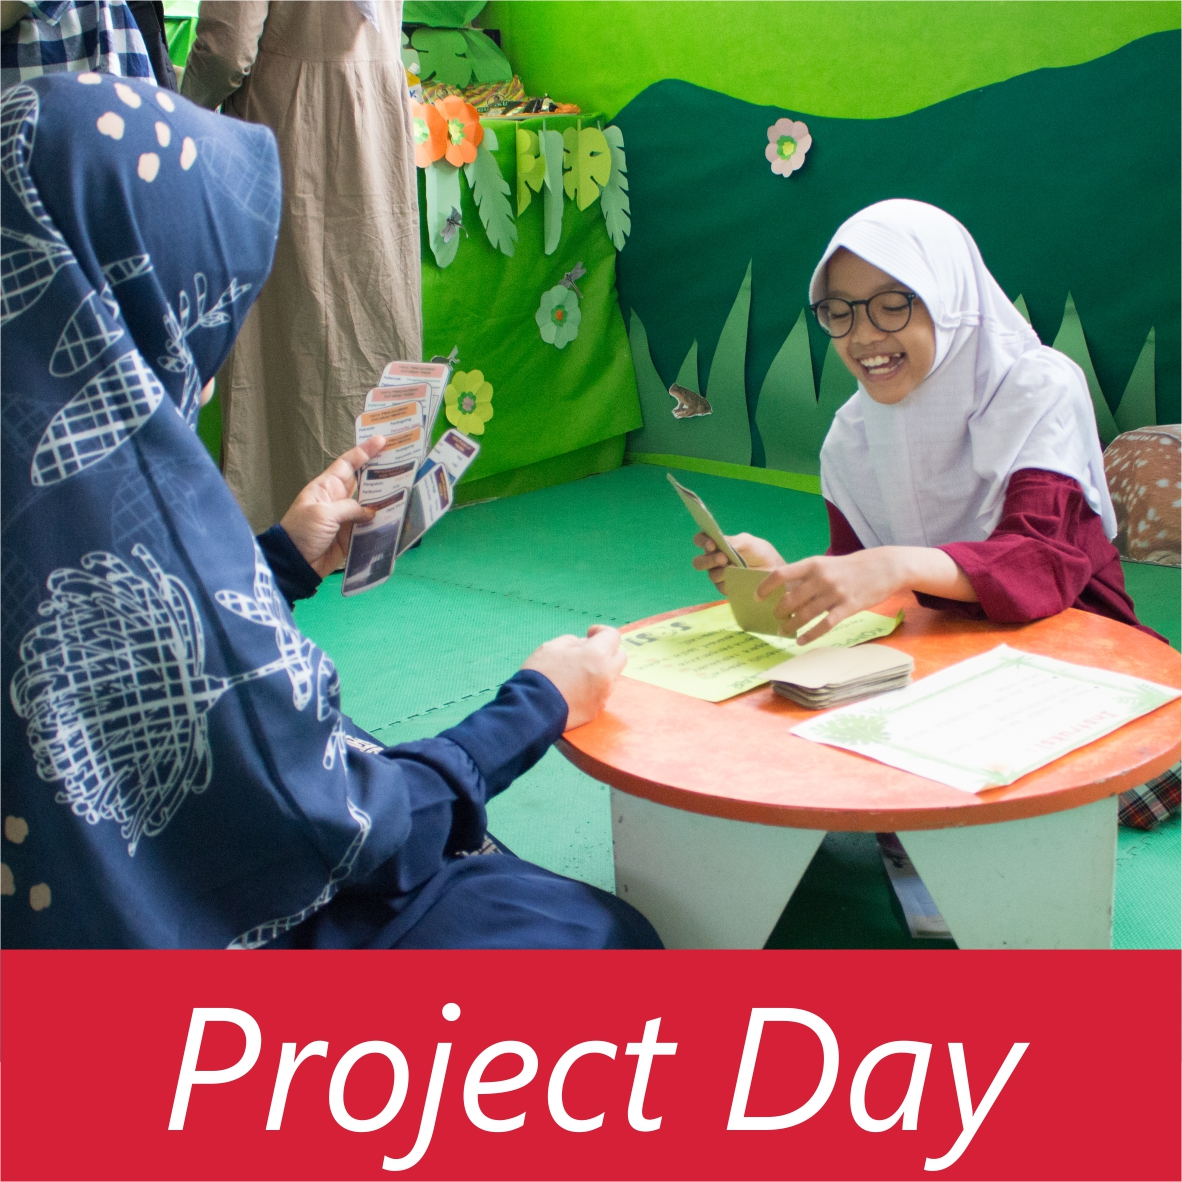 sd-projectday